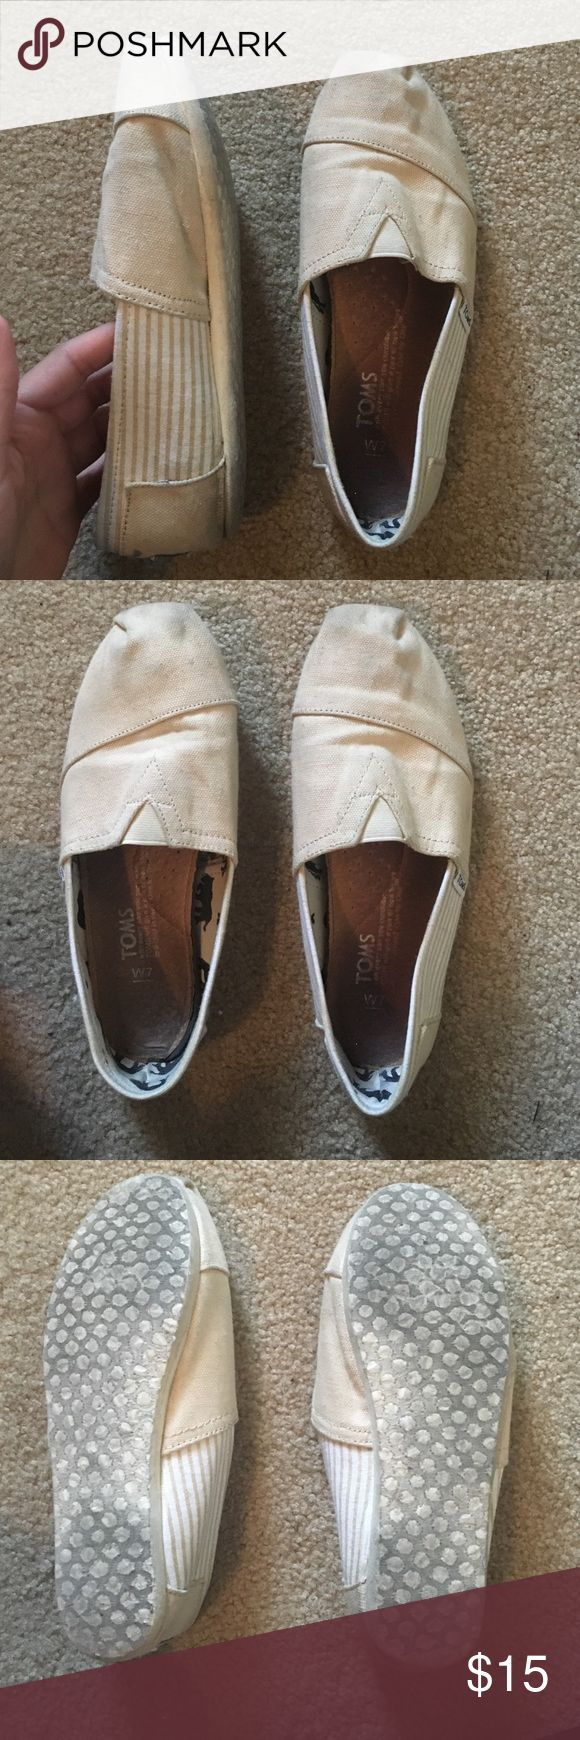 Toms Womens 7 Worn a couple of times, still in good condition! beige color toms TOMS Shoes Flats & Loafers